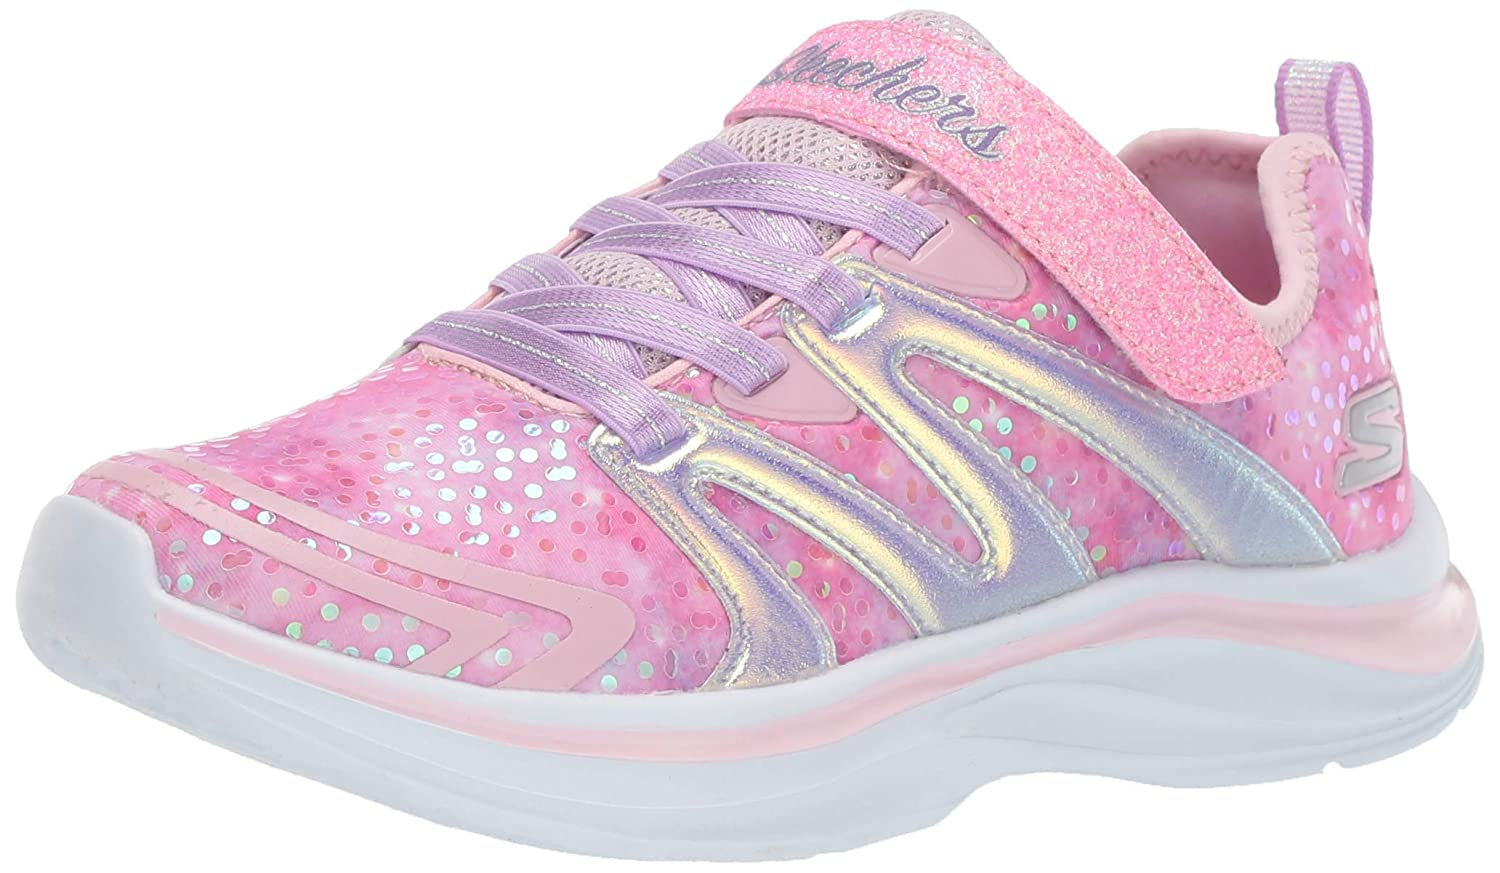 Skechers Double Dreams Unicorn Wishes (Girls' Toddler Youth)